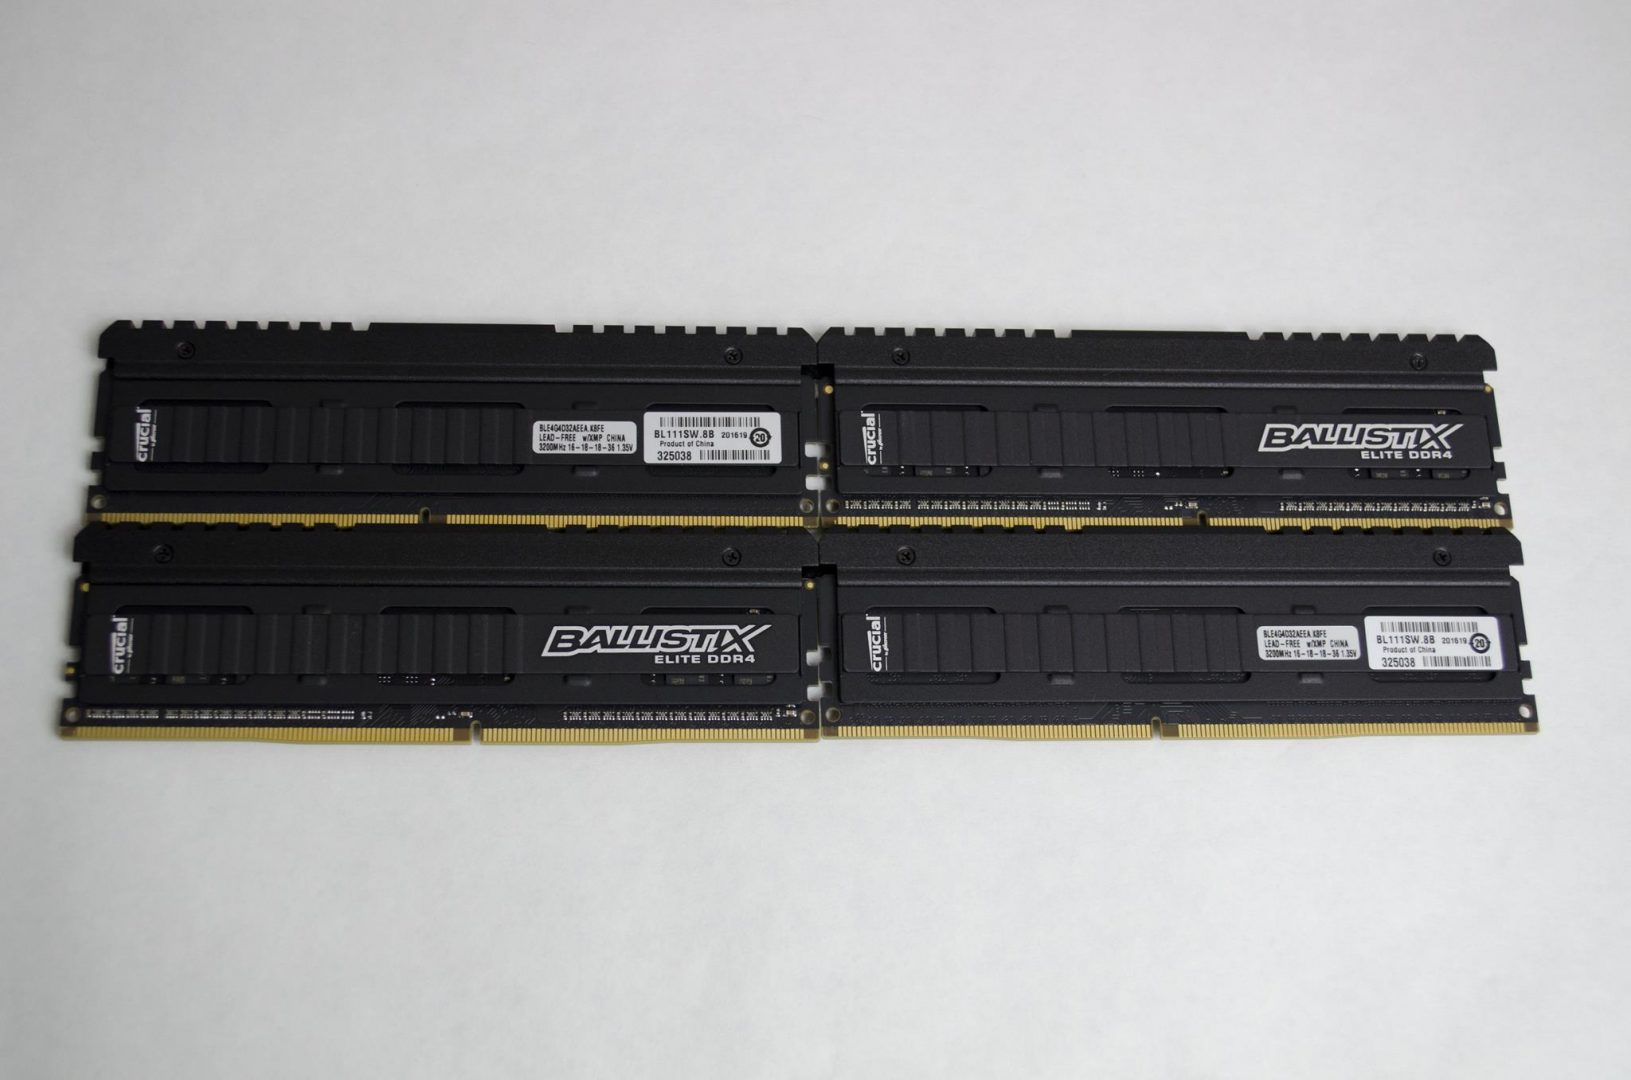 crucial ballistix elite ddr4 3200mhz ram review